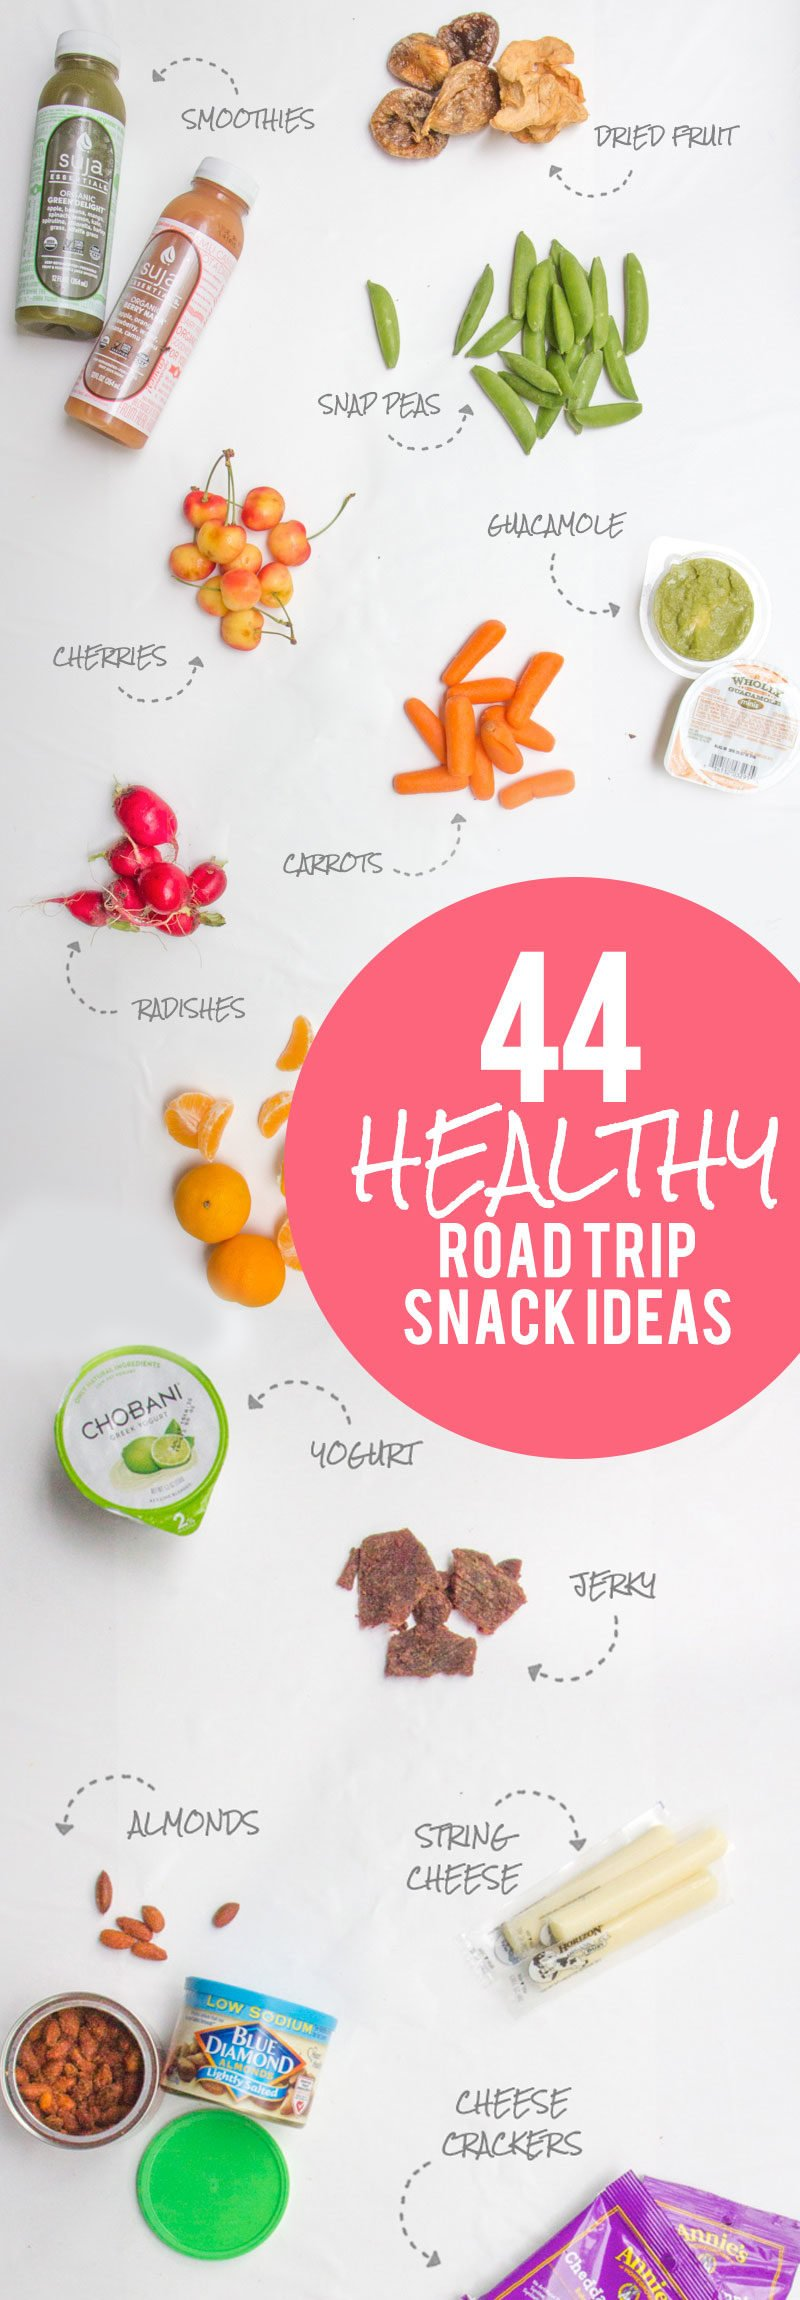 44 Healthy Road Trip Snack Ideas